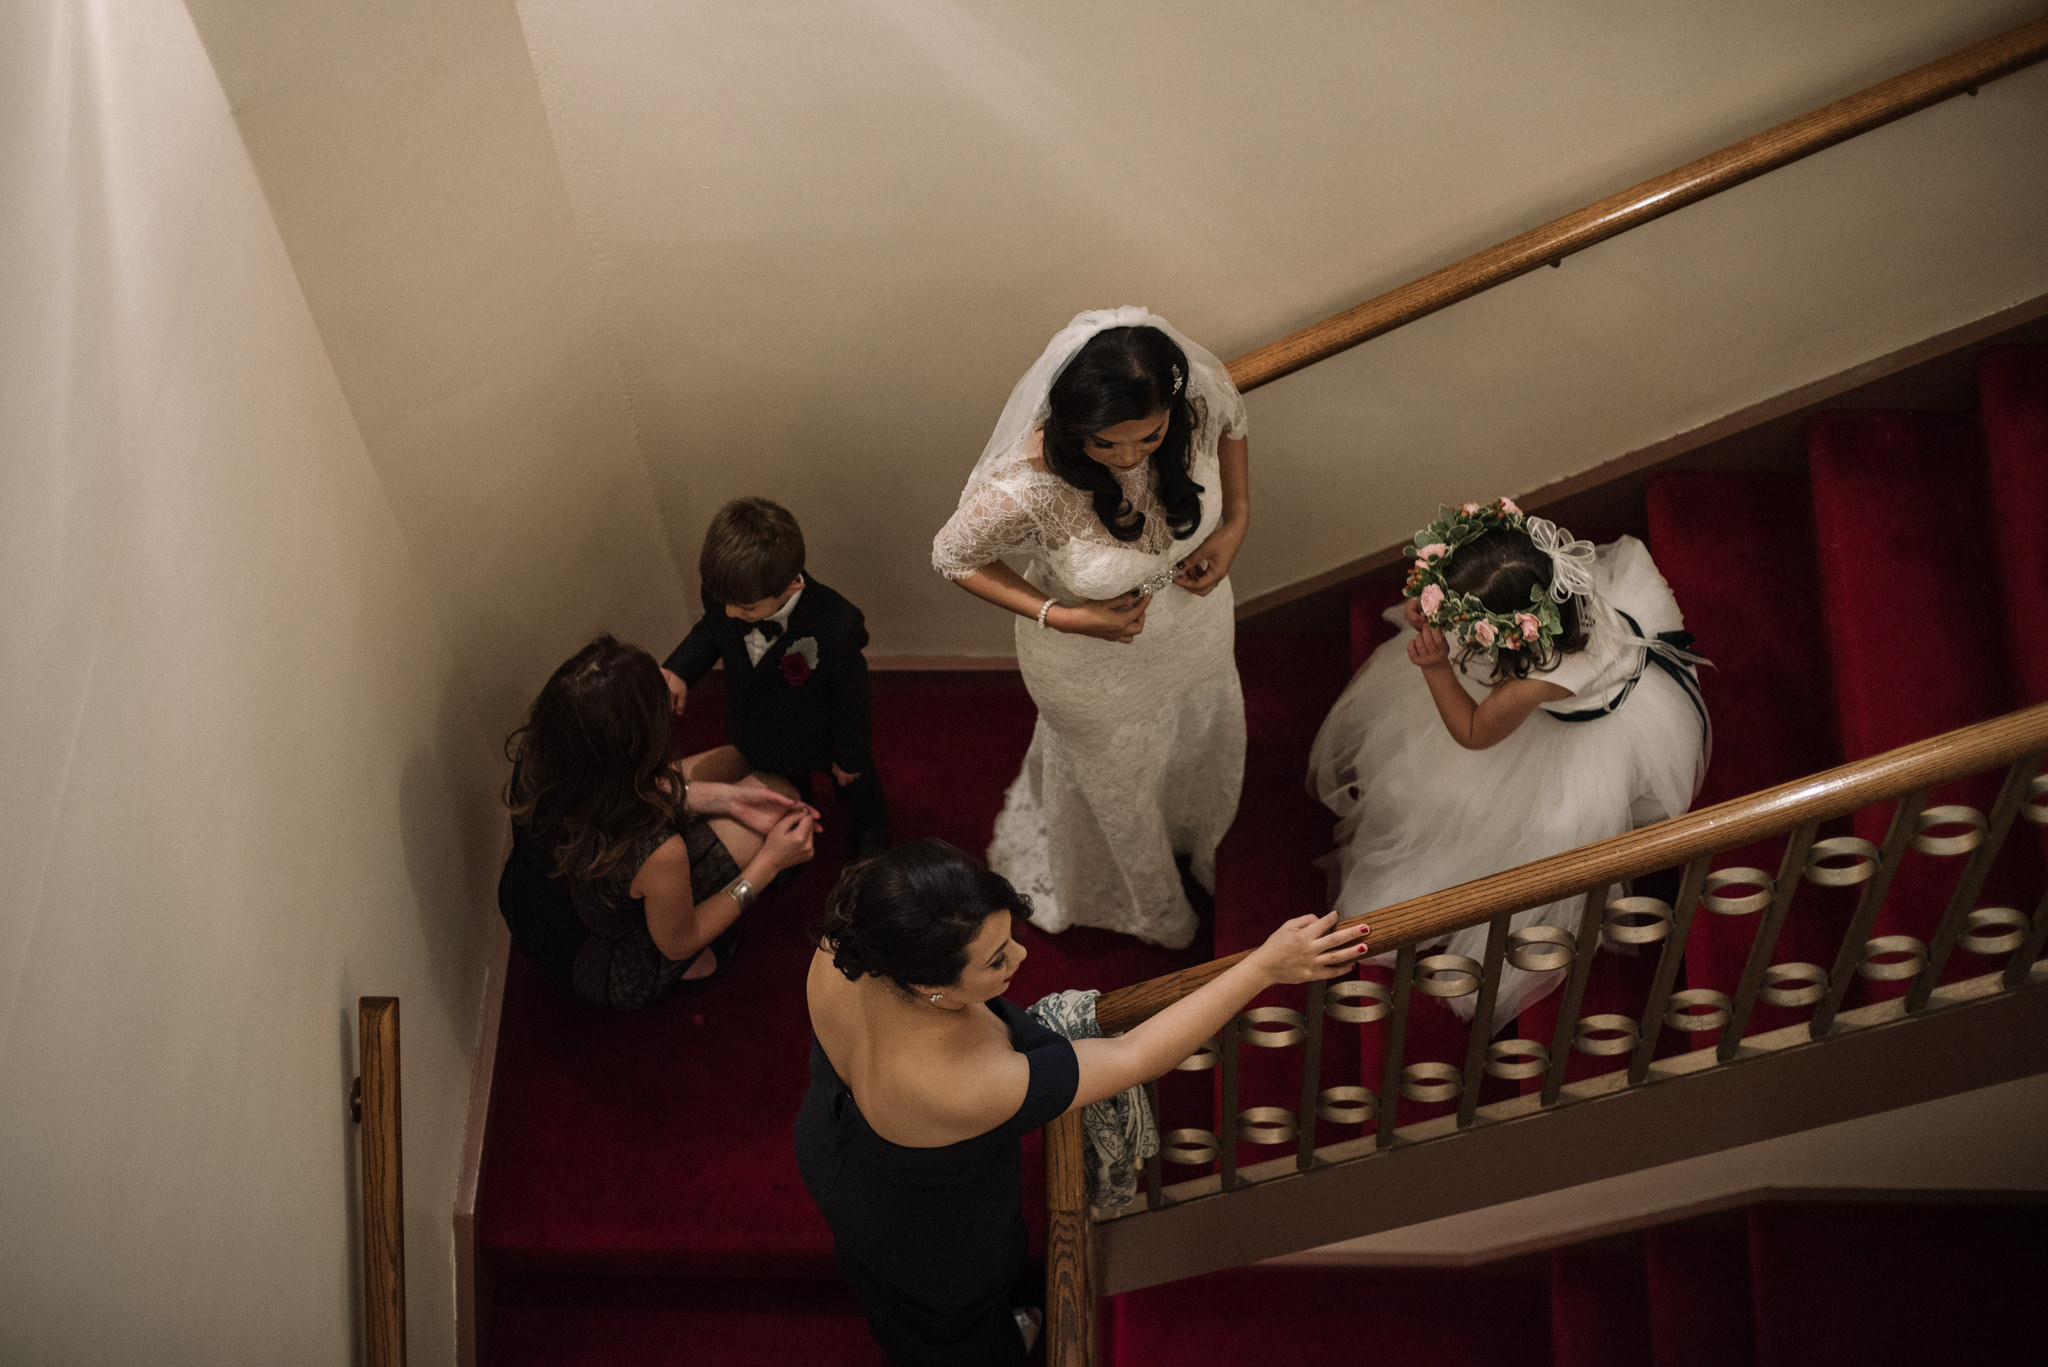 Daring Wanderer Photography - Daring Wanderer - Toronto wedding photographer - Greek Wedding - Greek Orthodox Wedding - Toronto